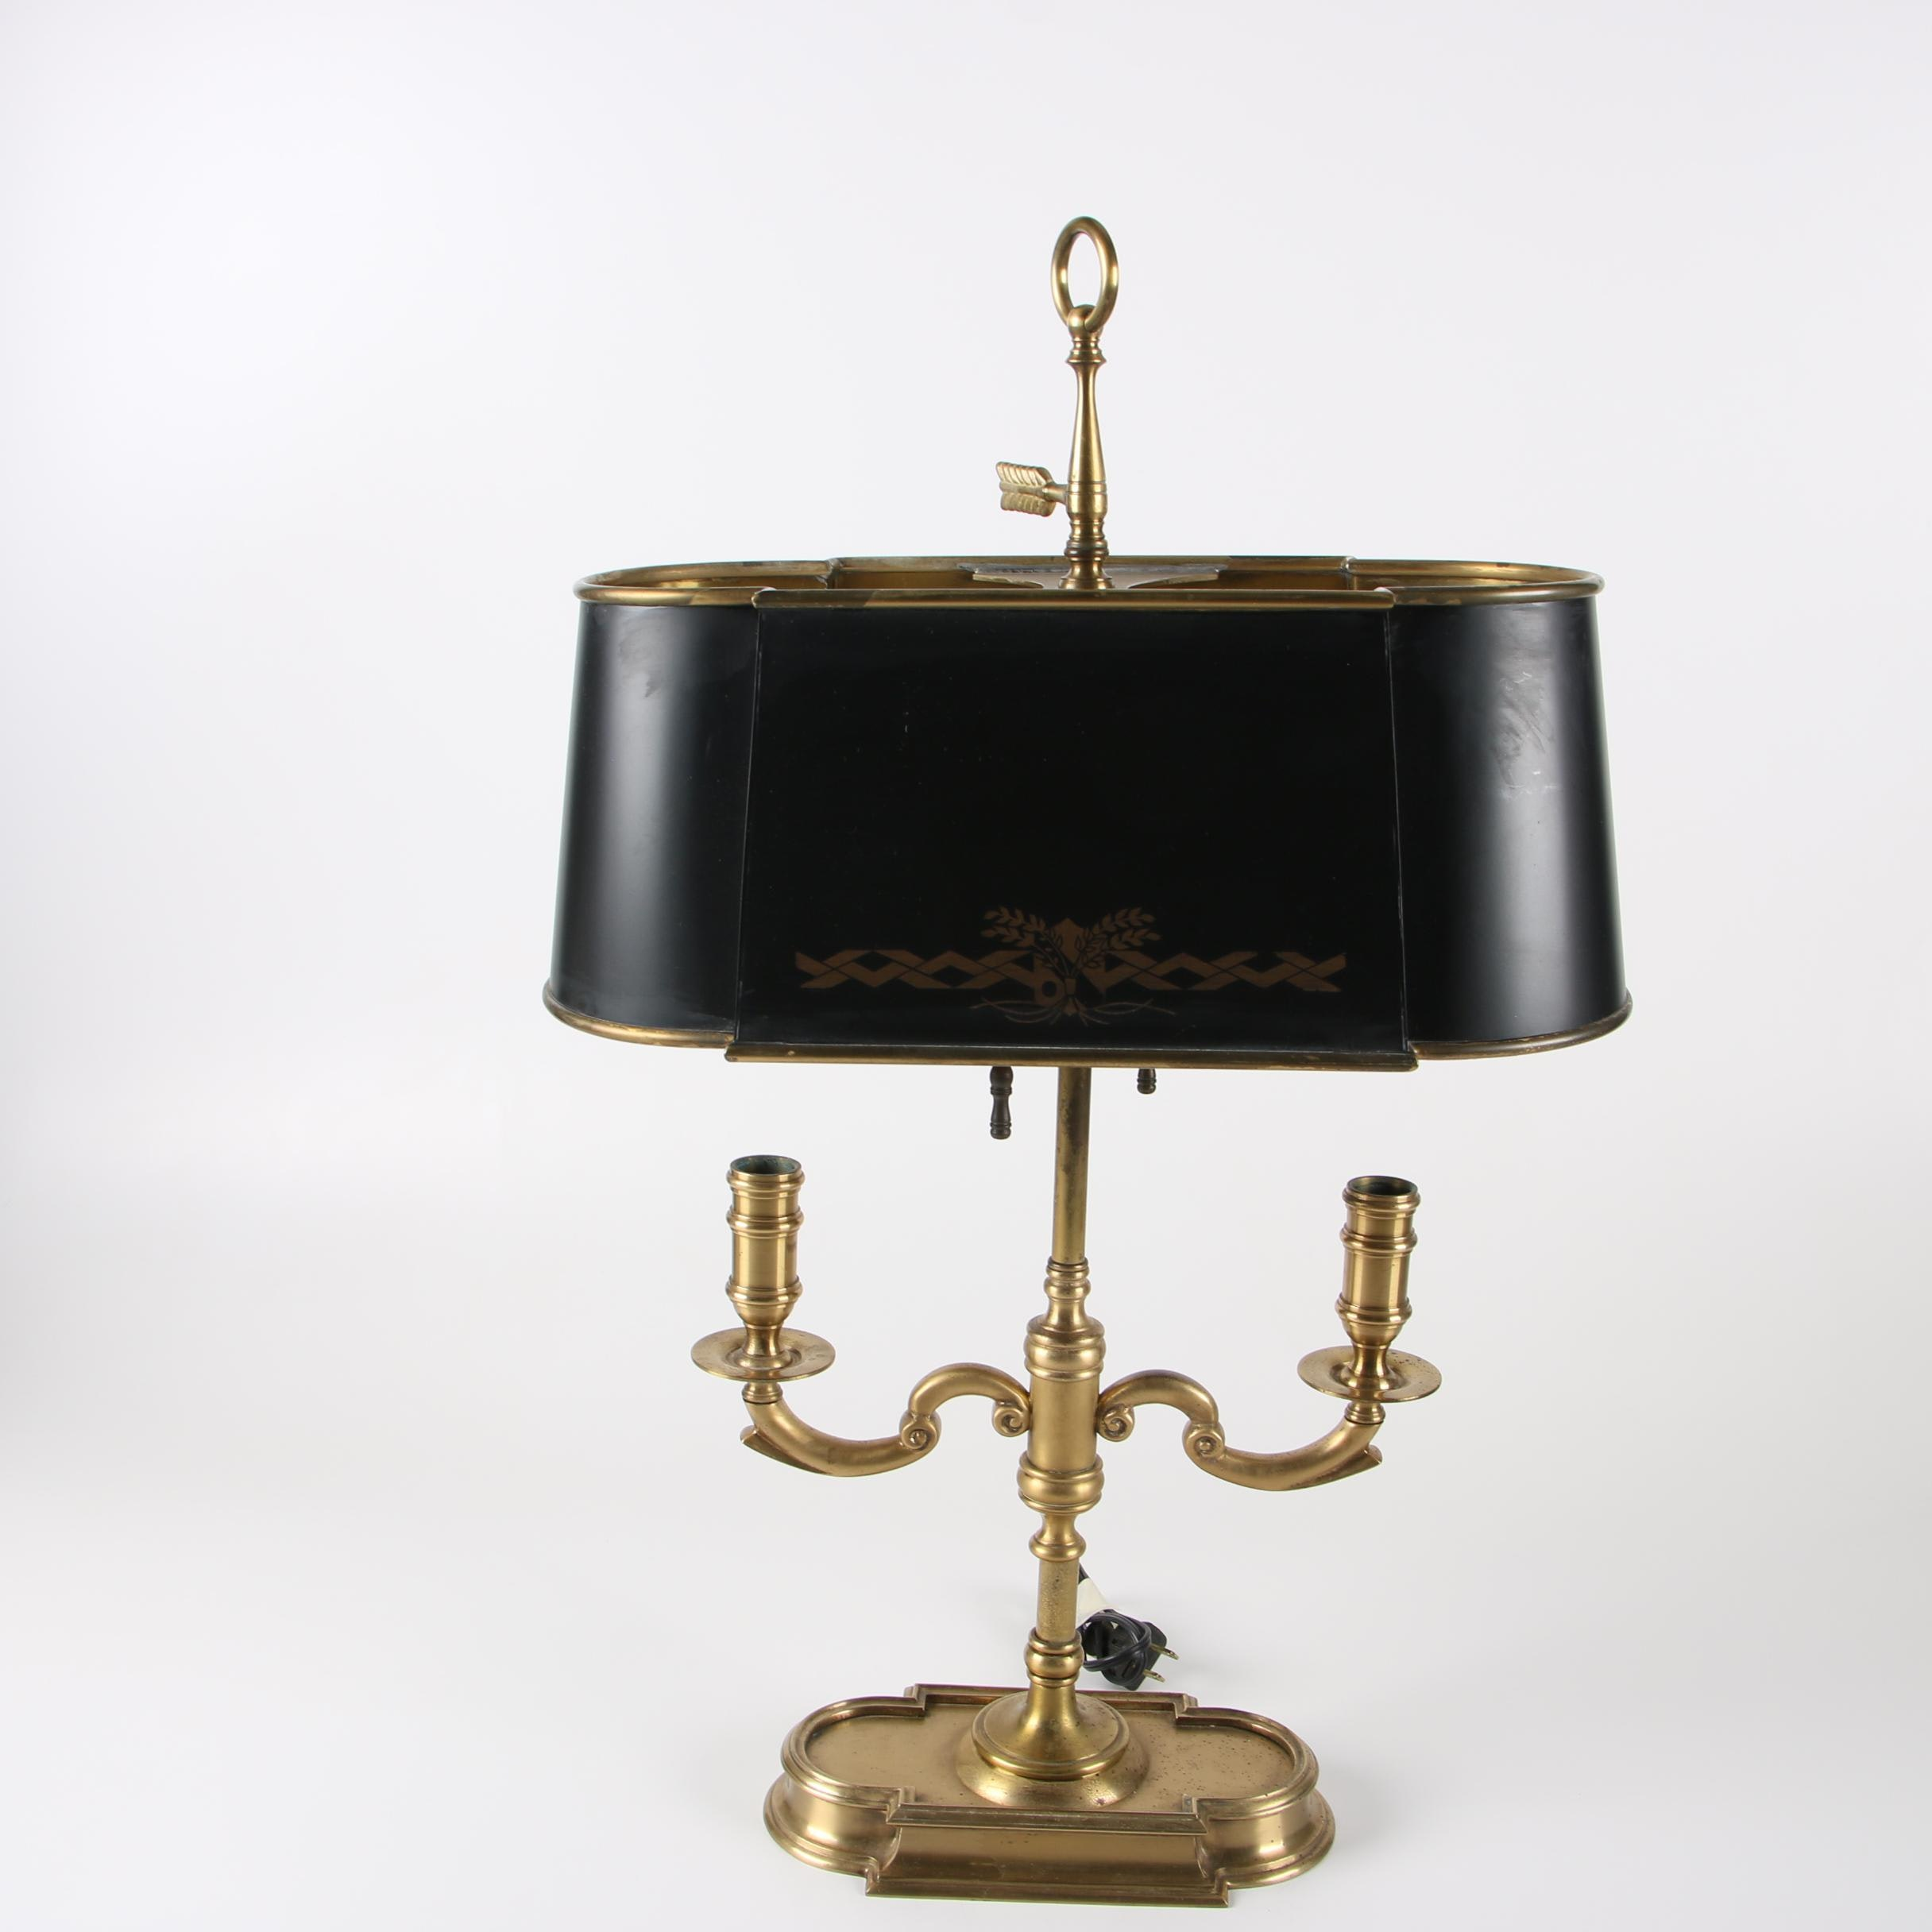 Empire Style Wildwood Brass Bouillotte Table Lamp with Tole Lamp Shade